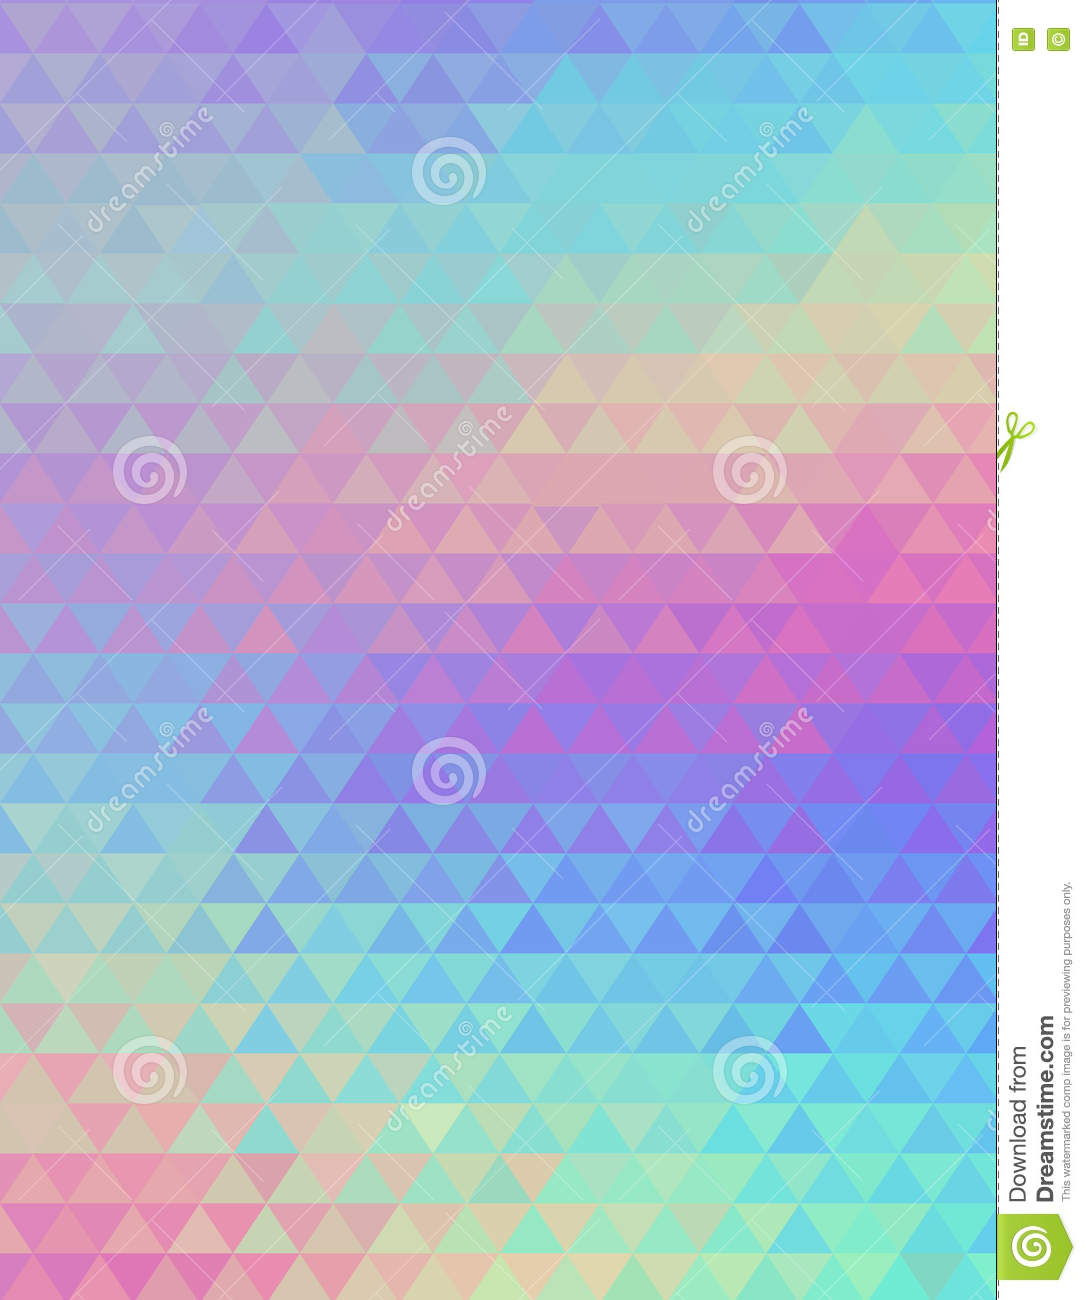 90s poster design - Holographic Geometric Vector Background 80s And 90s Fashion Design Hologram Vibrant Style Trend